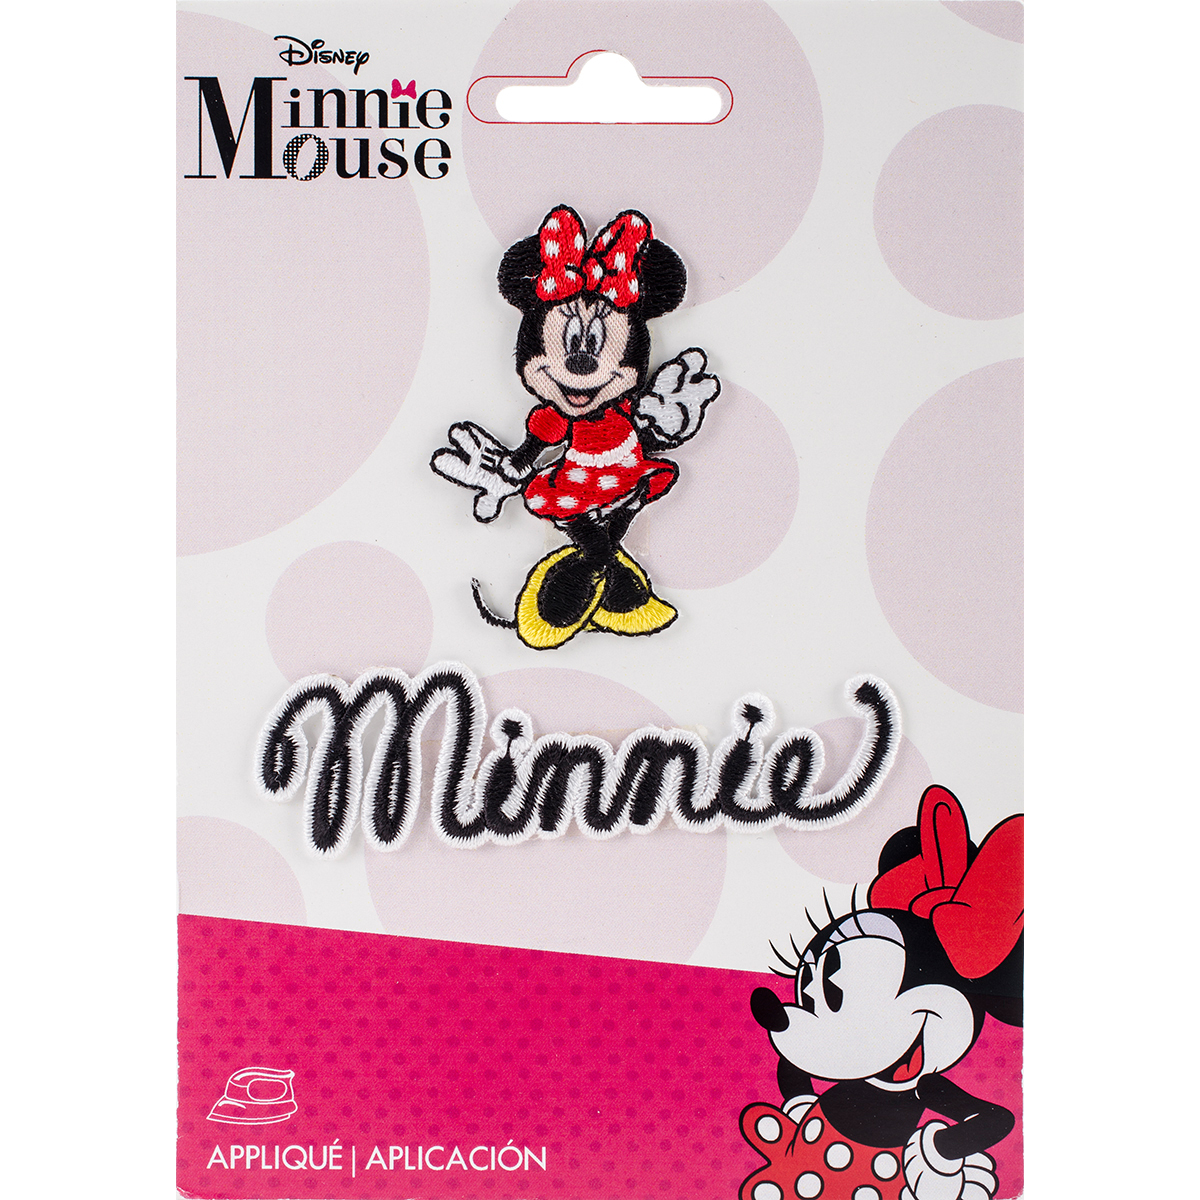 Disney Mickey Mouse Iron-On Applique, Minnie Mouse Body with Script